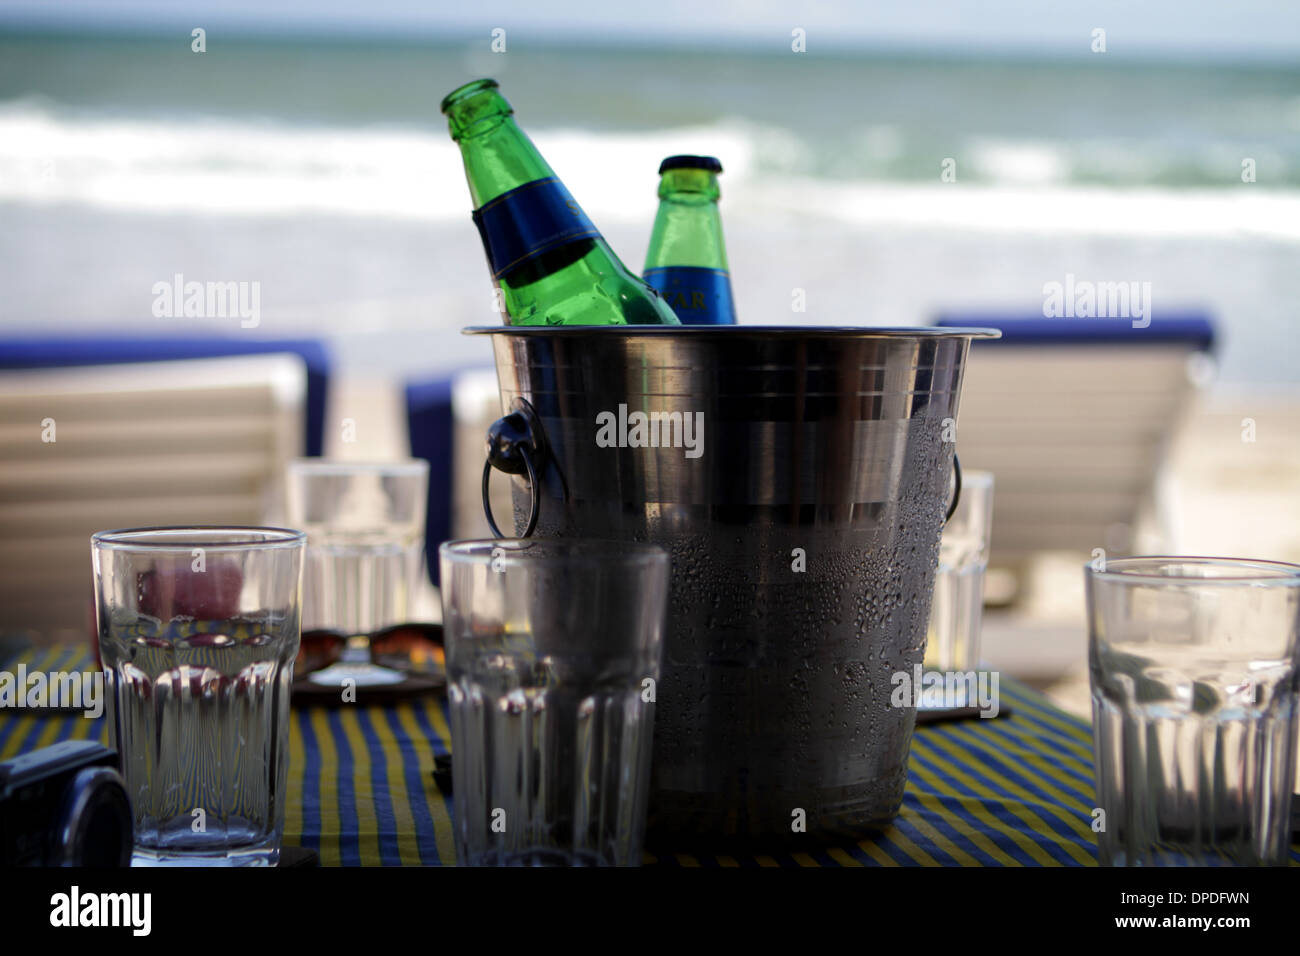 Two bottles in an ice-cooler on a table by the beach - Stock Image